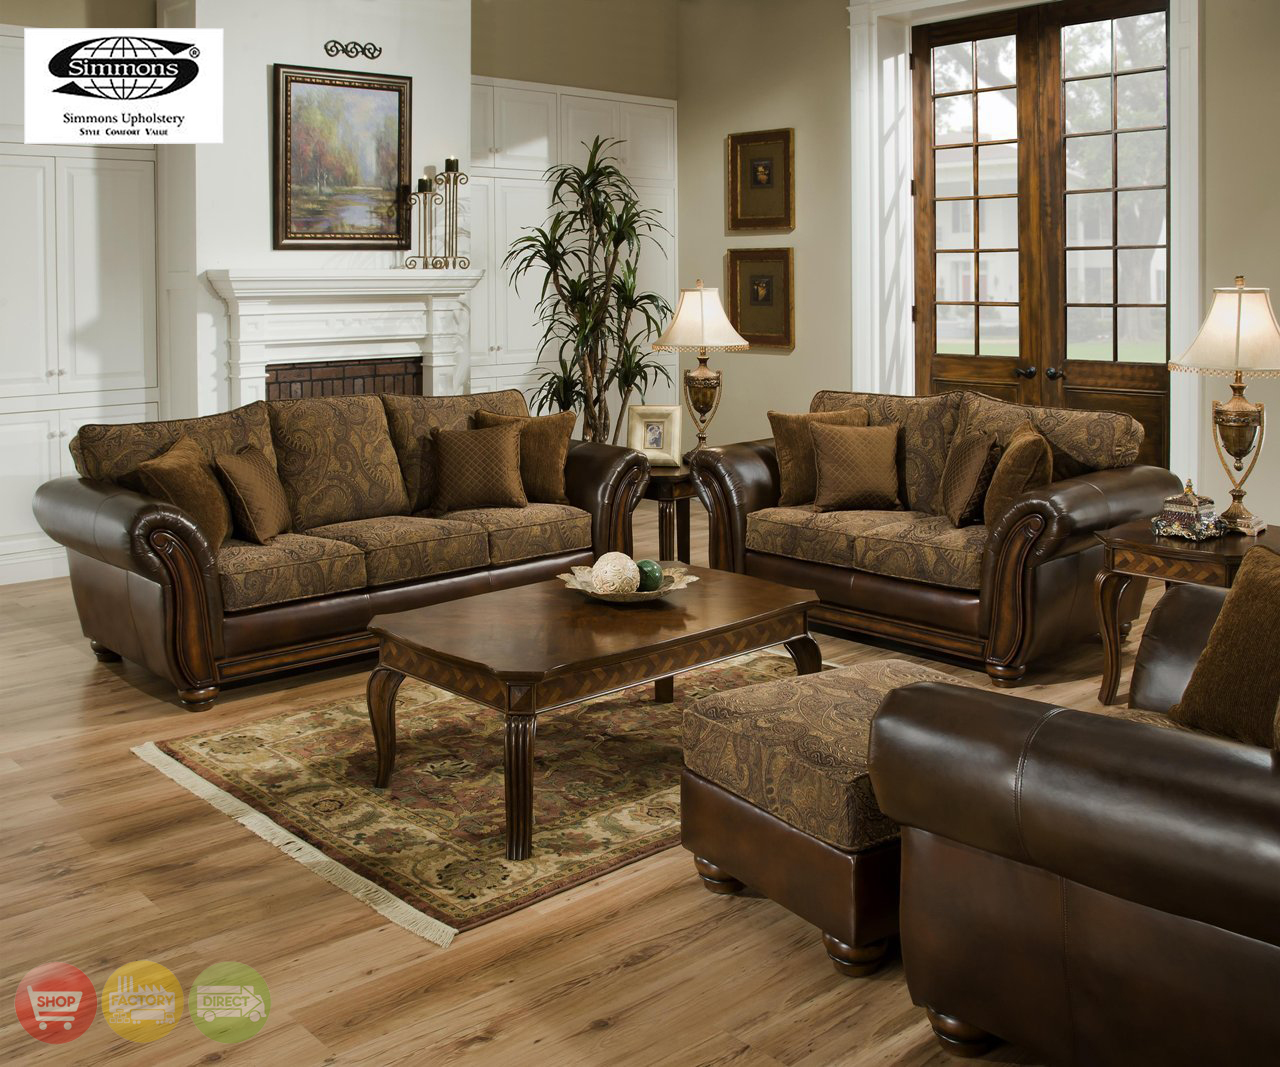 Traditional Sofas Living Room Furniture: Zephyr Chenille And Leather Living Room Sofa & Loveseat Set